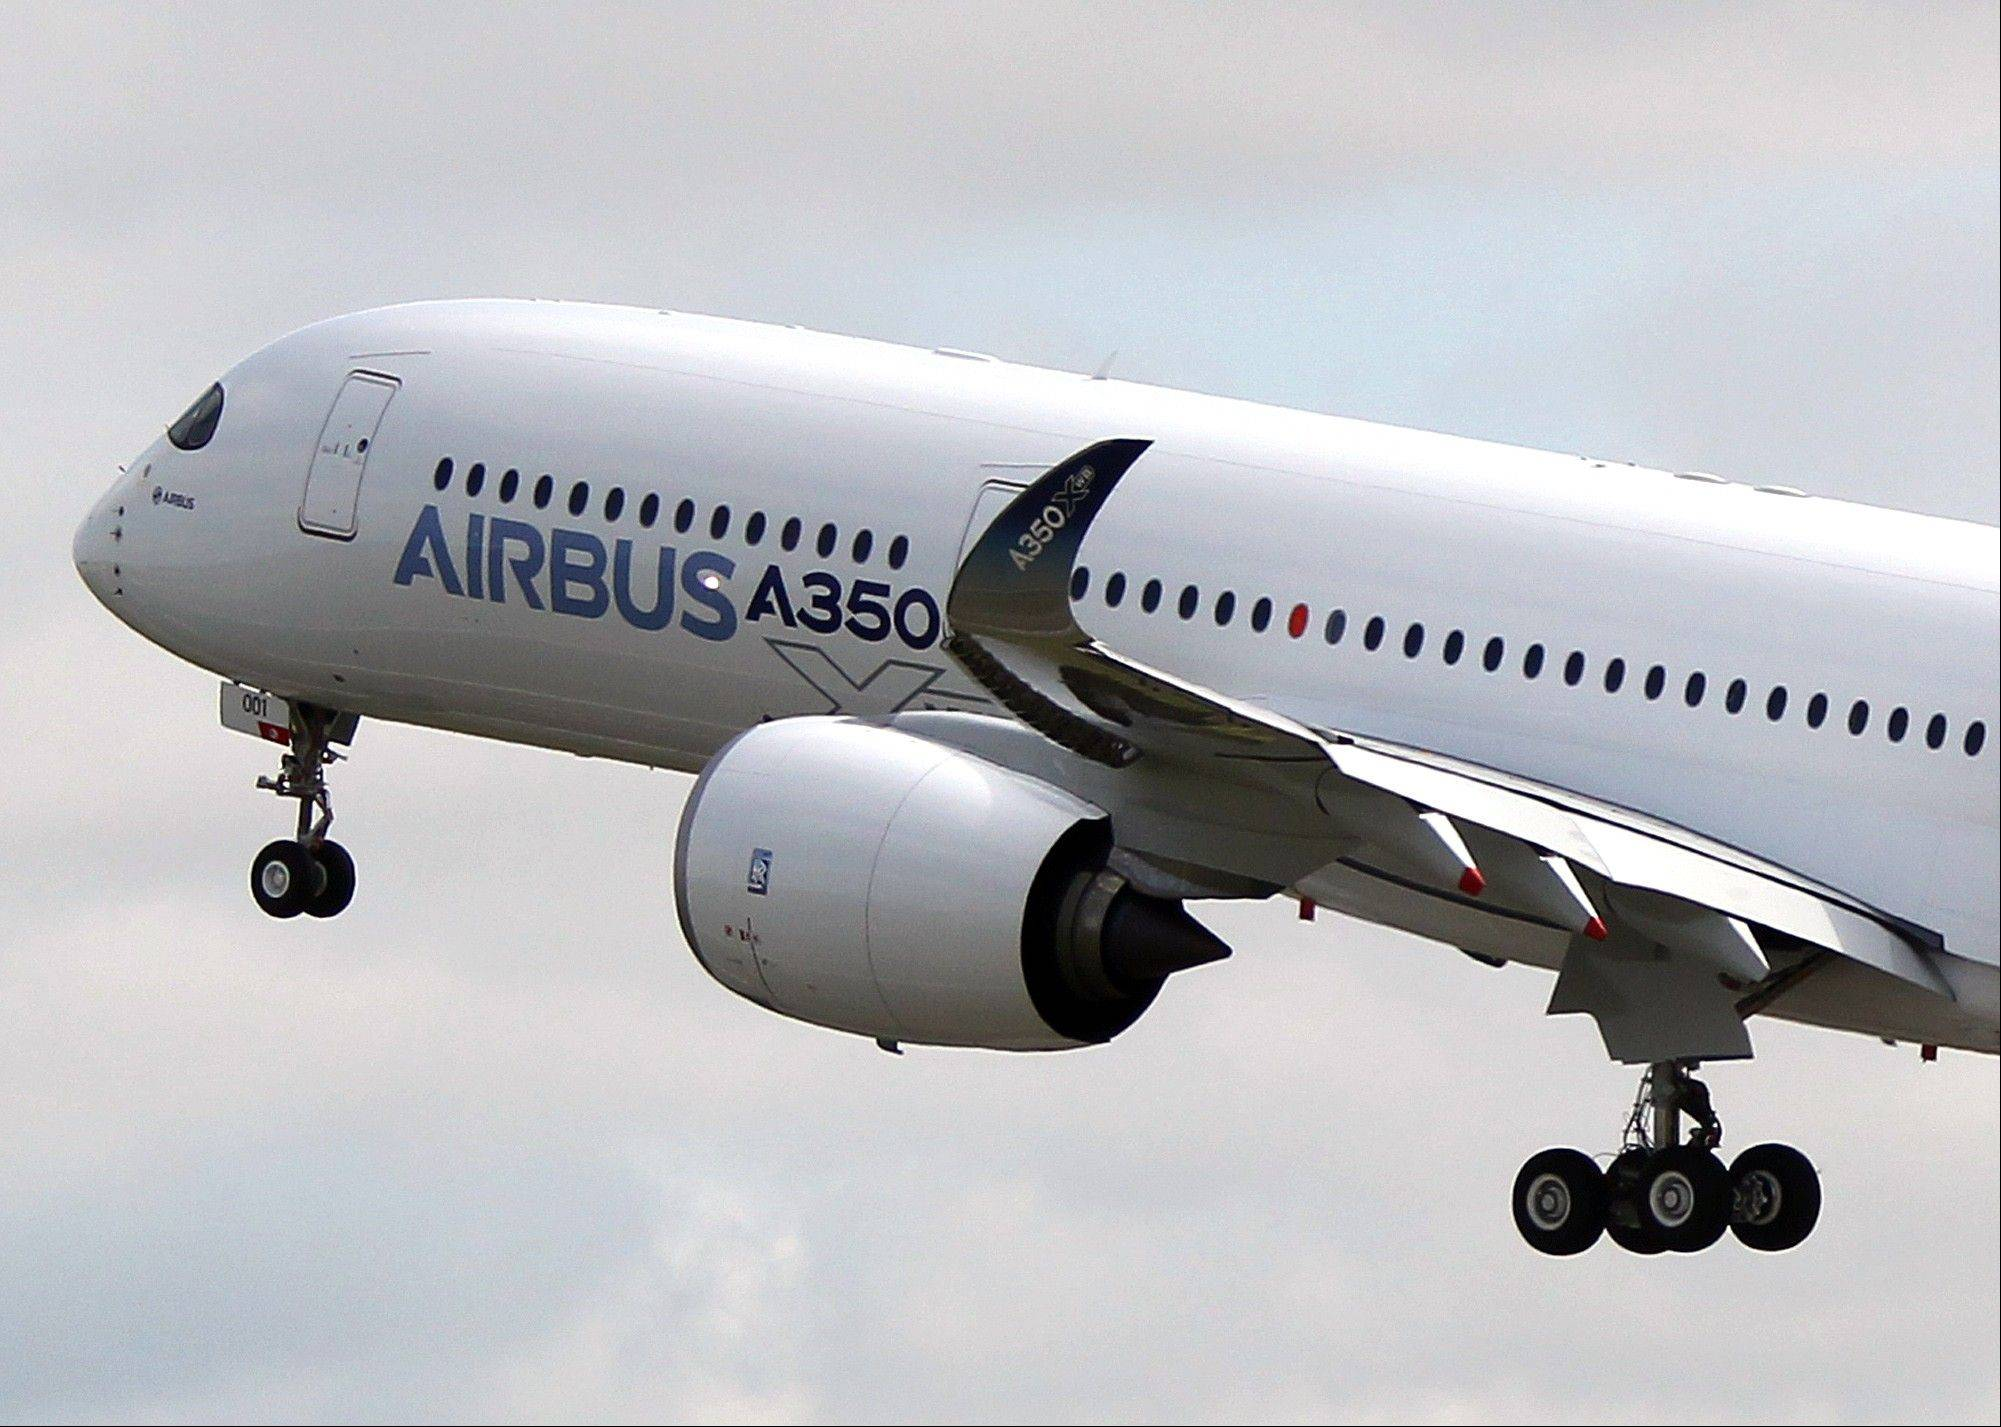 The Airbus A350 takes off on its maiden flight at Blagnac airport near Toulouse, southwestern France, Friday.